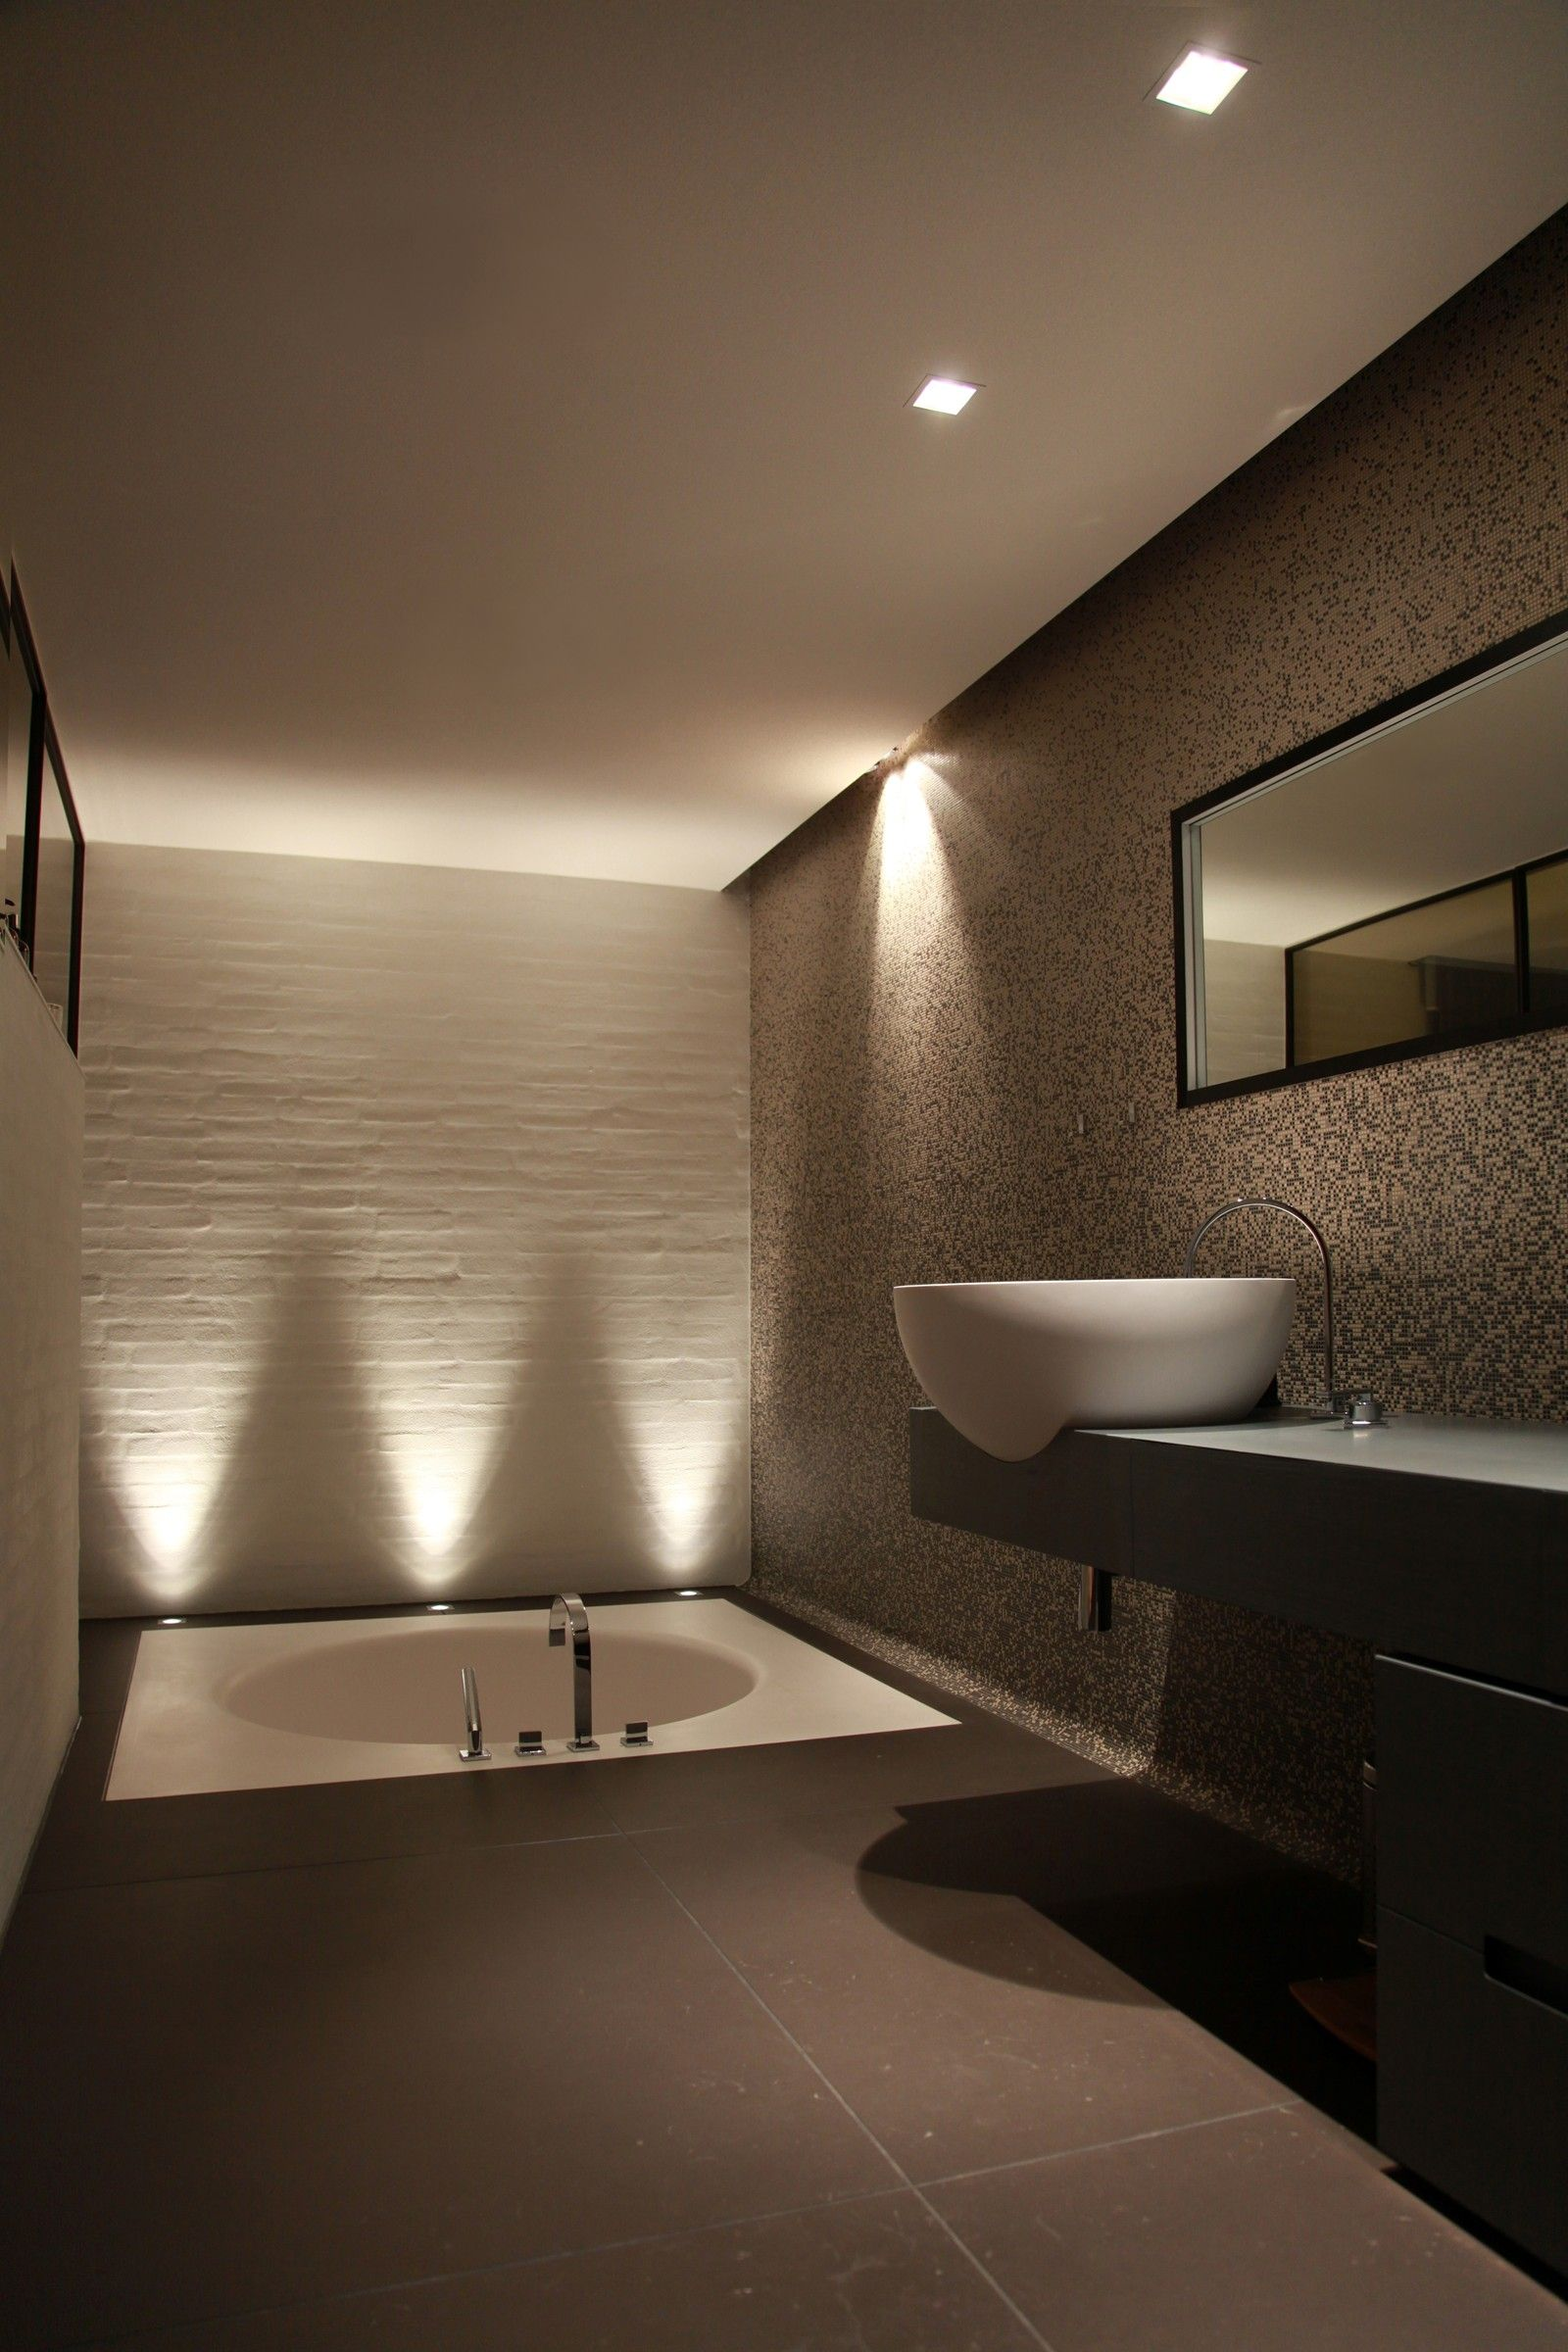 Dramatic up lighting accents sculptural wall tiles